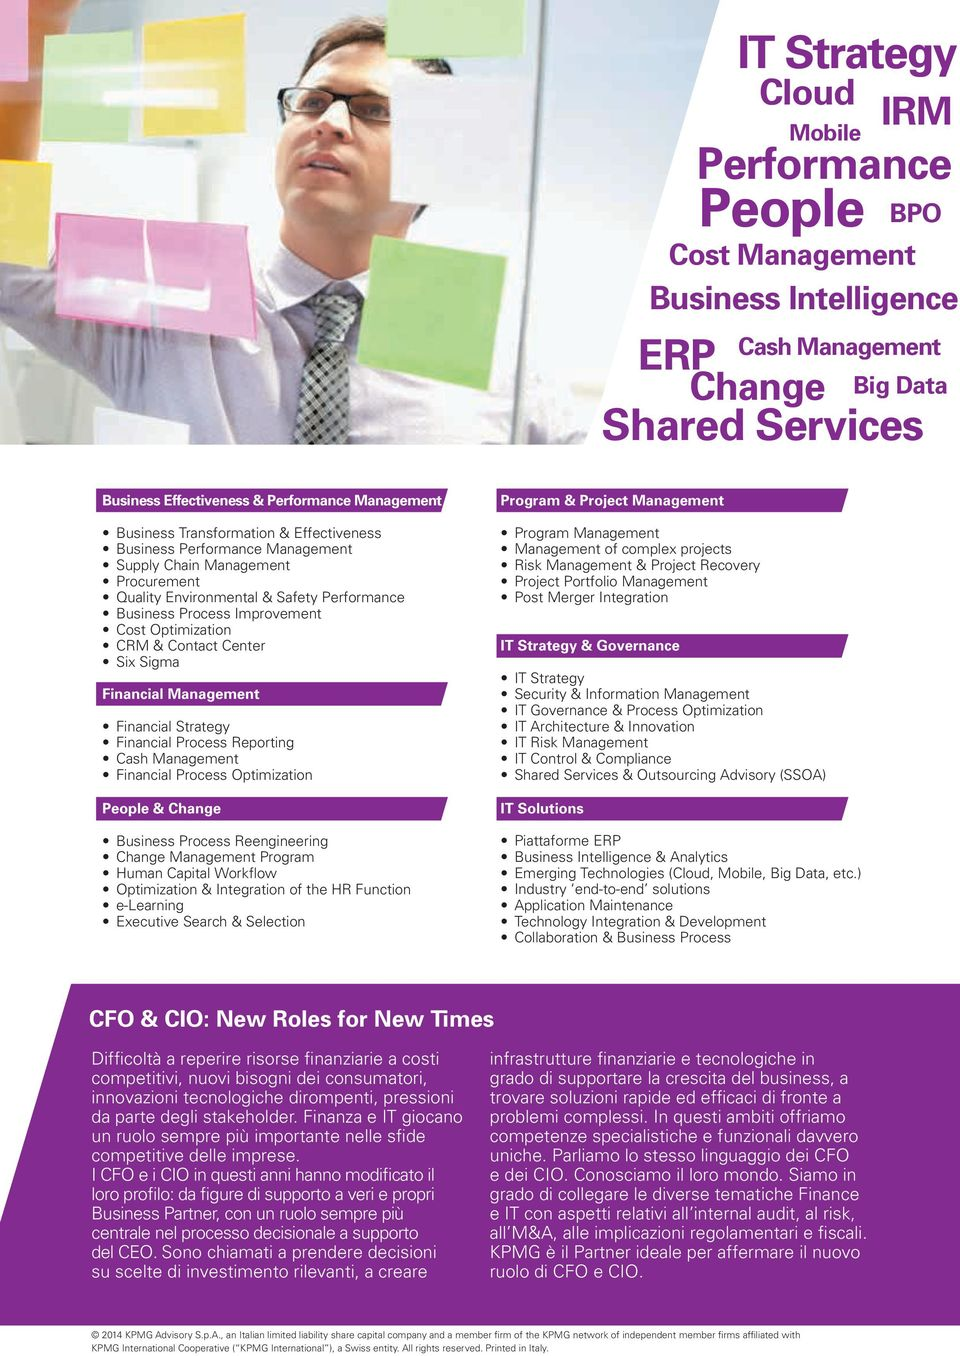 Contact Center Six Sigma Financial Management Financial Strategy Financial Process Reporting Cash Management Financial Process Optimization People & Change Business Process Reengineering Change